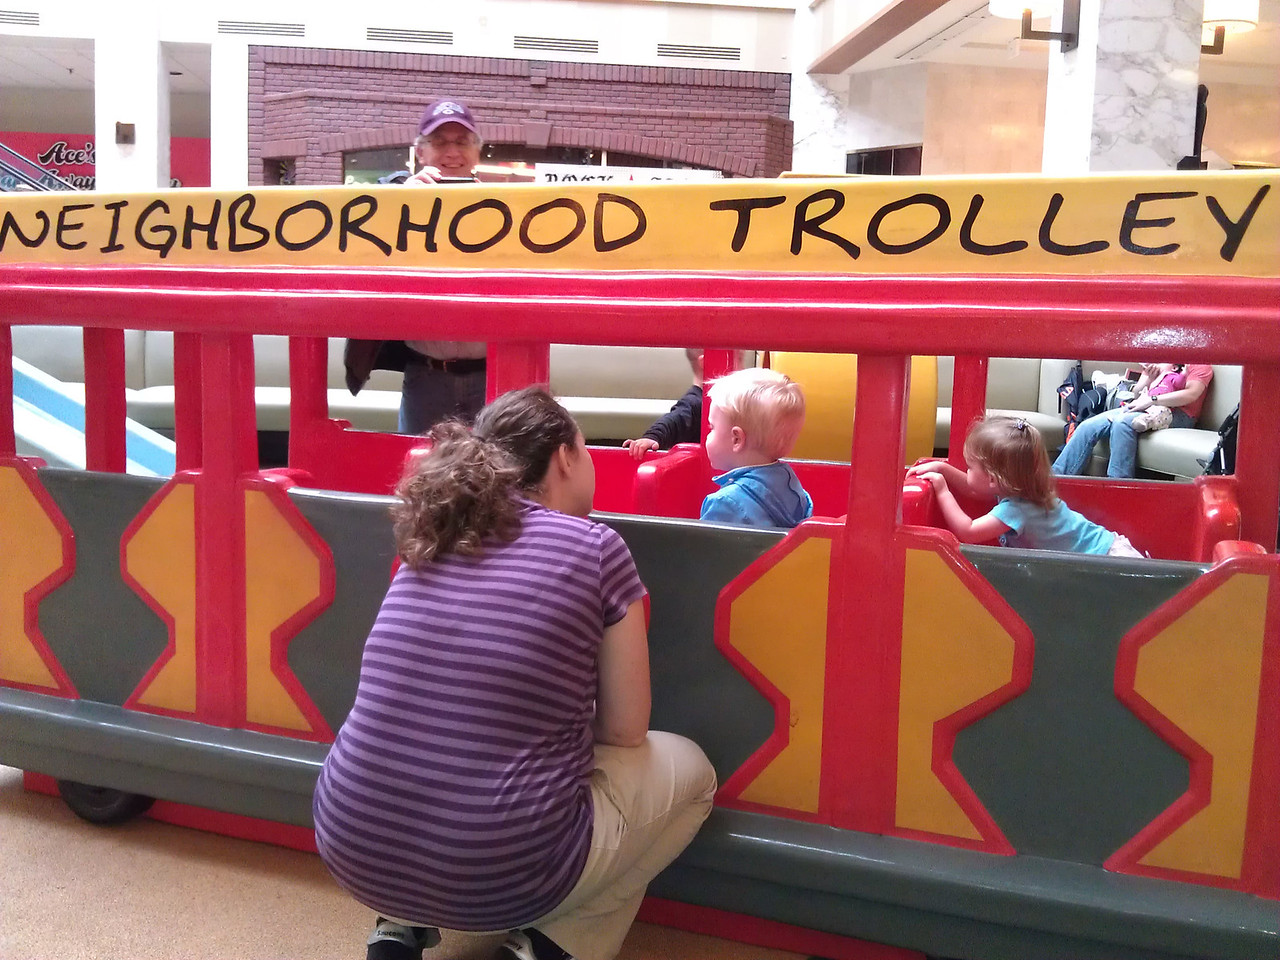 riding the trolley with Mommy nearby